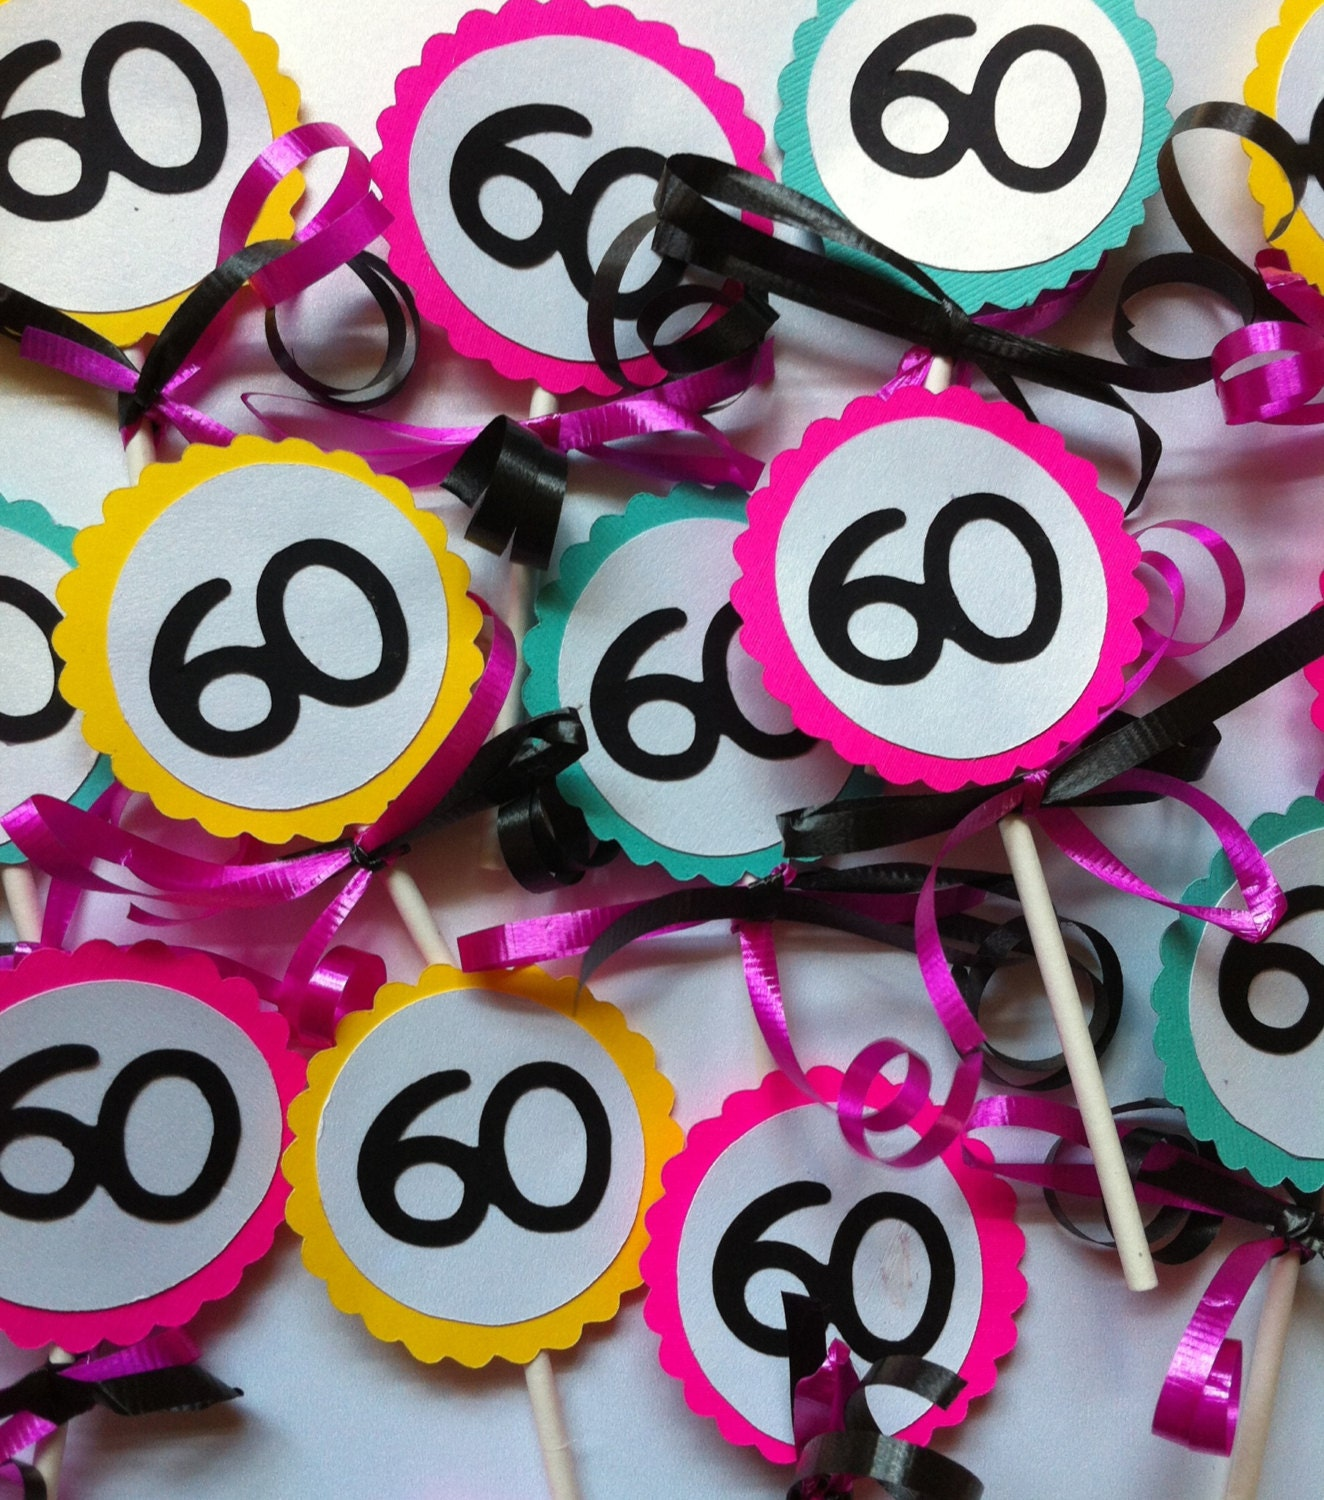 60th birthday decorations party favors ideas for 60th birthday party decoration